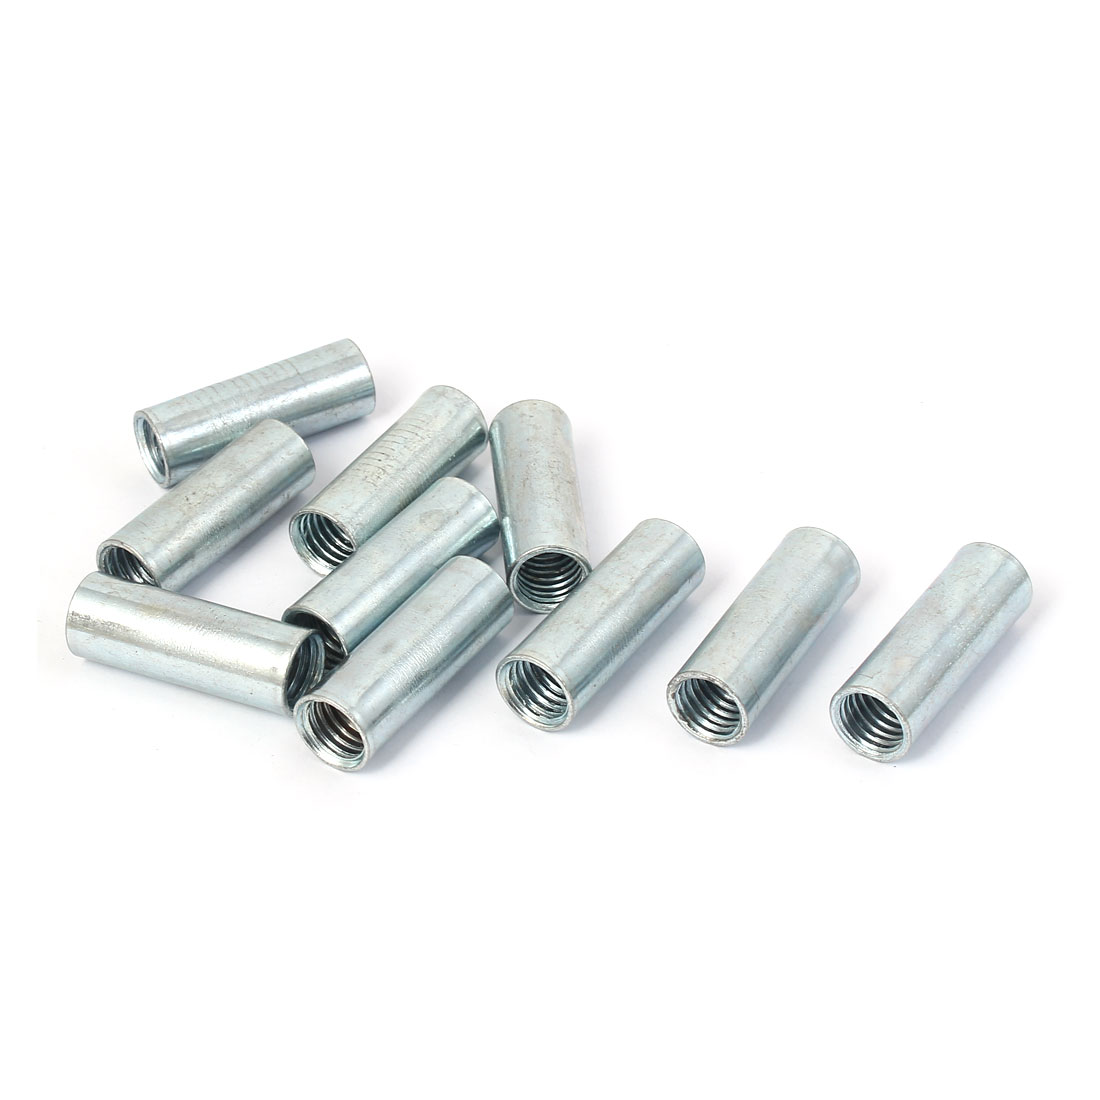 HEX  STUD FULLY THREADED CONNECTOR COUPLER JOINING CONNECTING ALL THREAD NUT